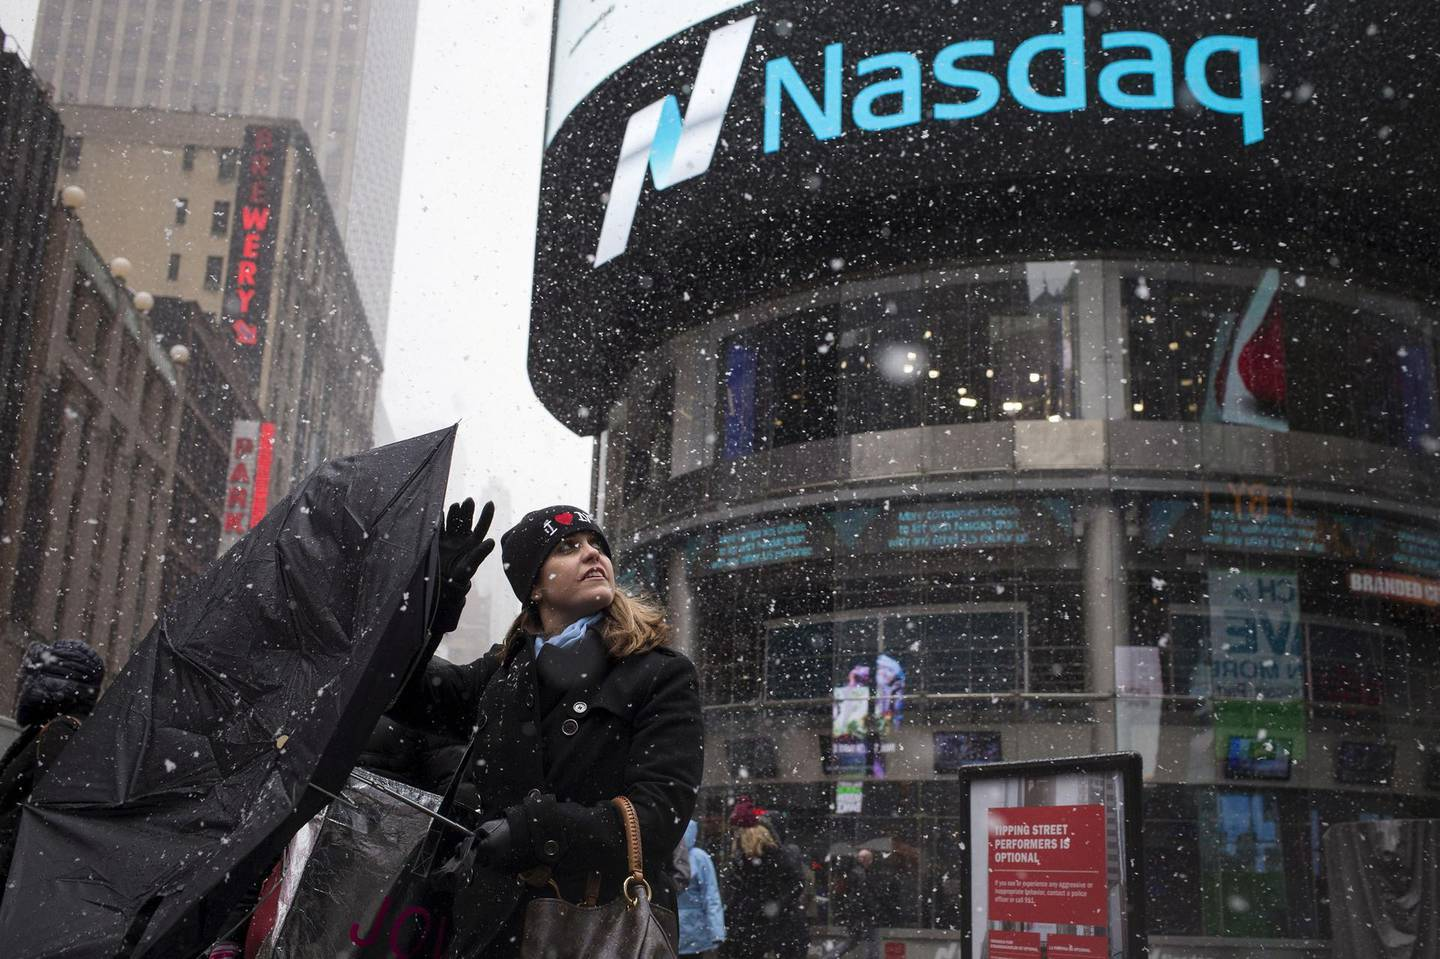 FILE PHOTO: A woman's umbrella turns inside out as she walks past the Nasdaq MarketSite during a snow storm in Times Square, New York, March 20, 2015.   REUTERS/Adrees Latif/File Photo